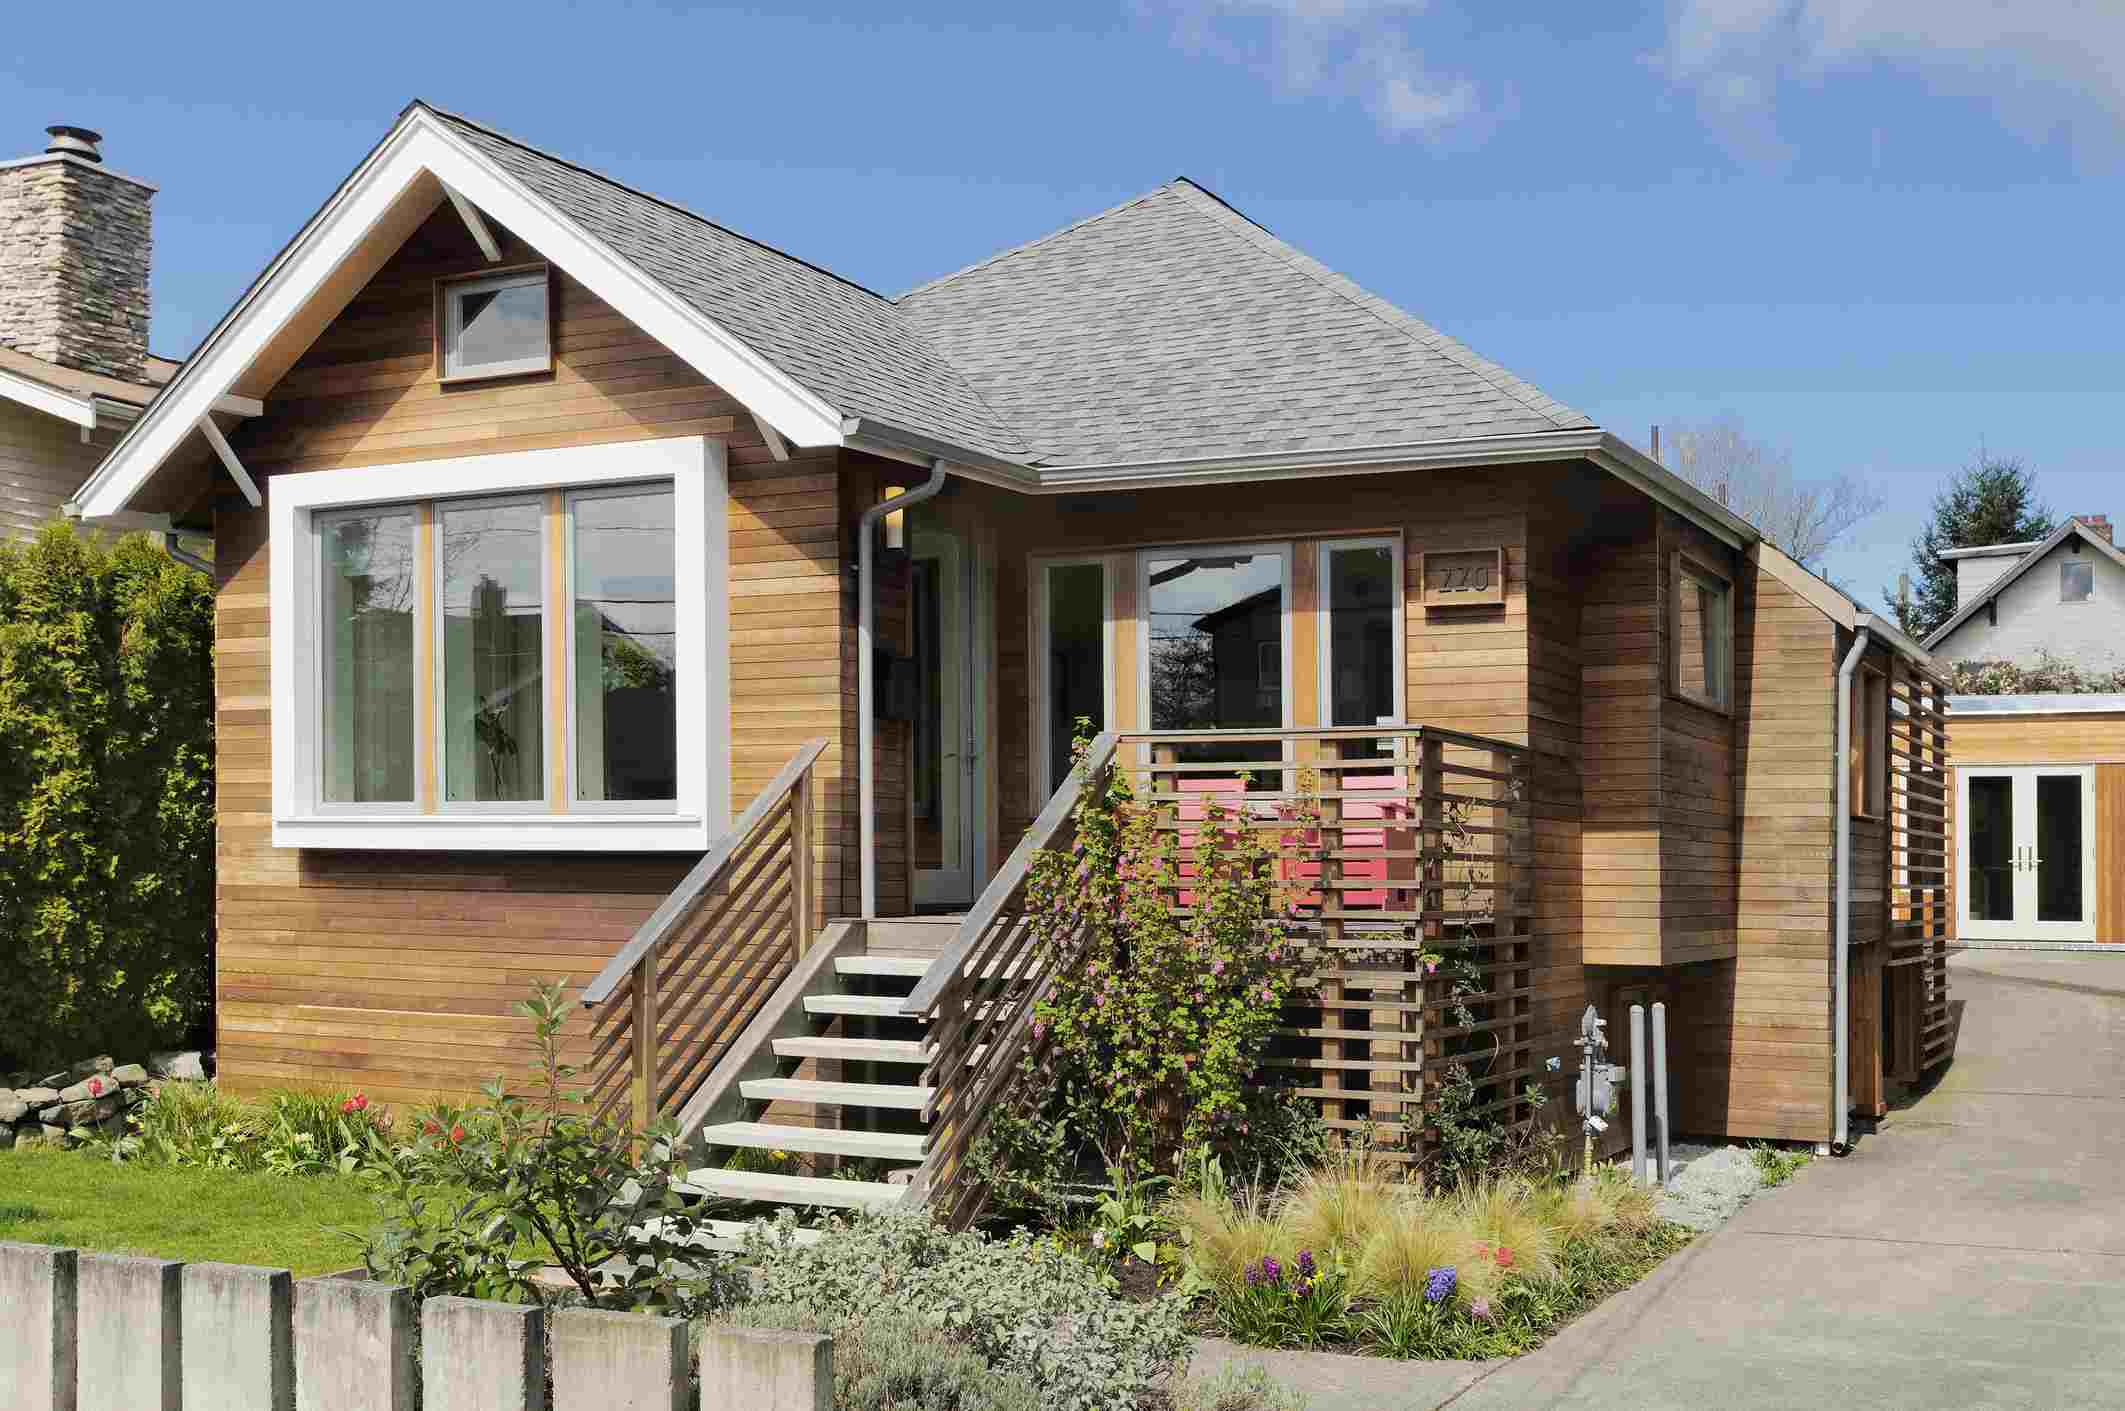 A craftsman-style home with wood siding